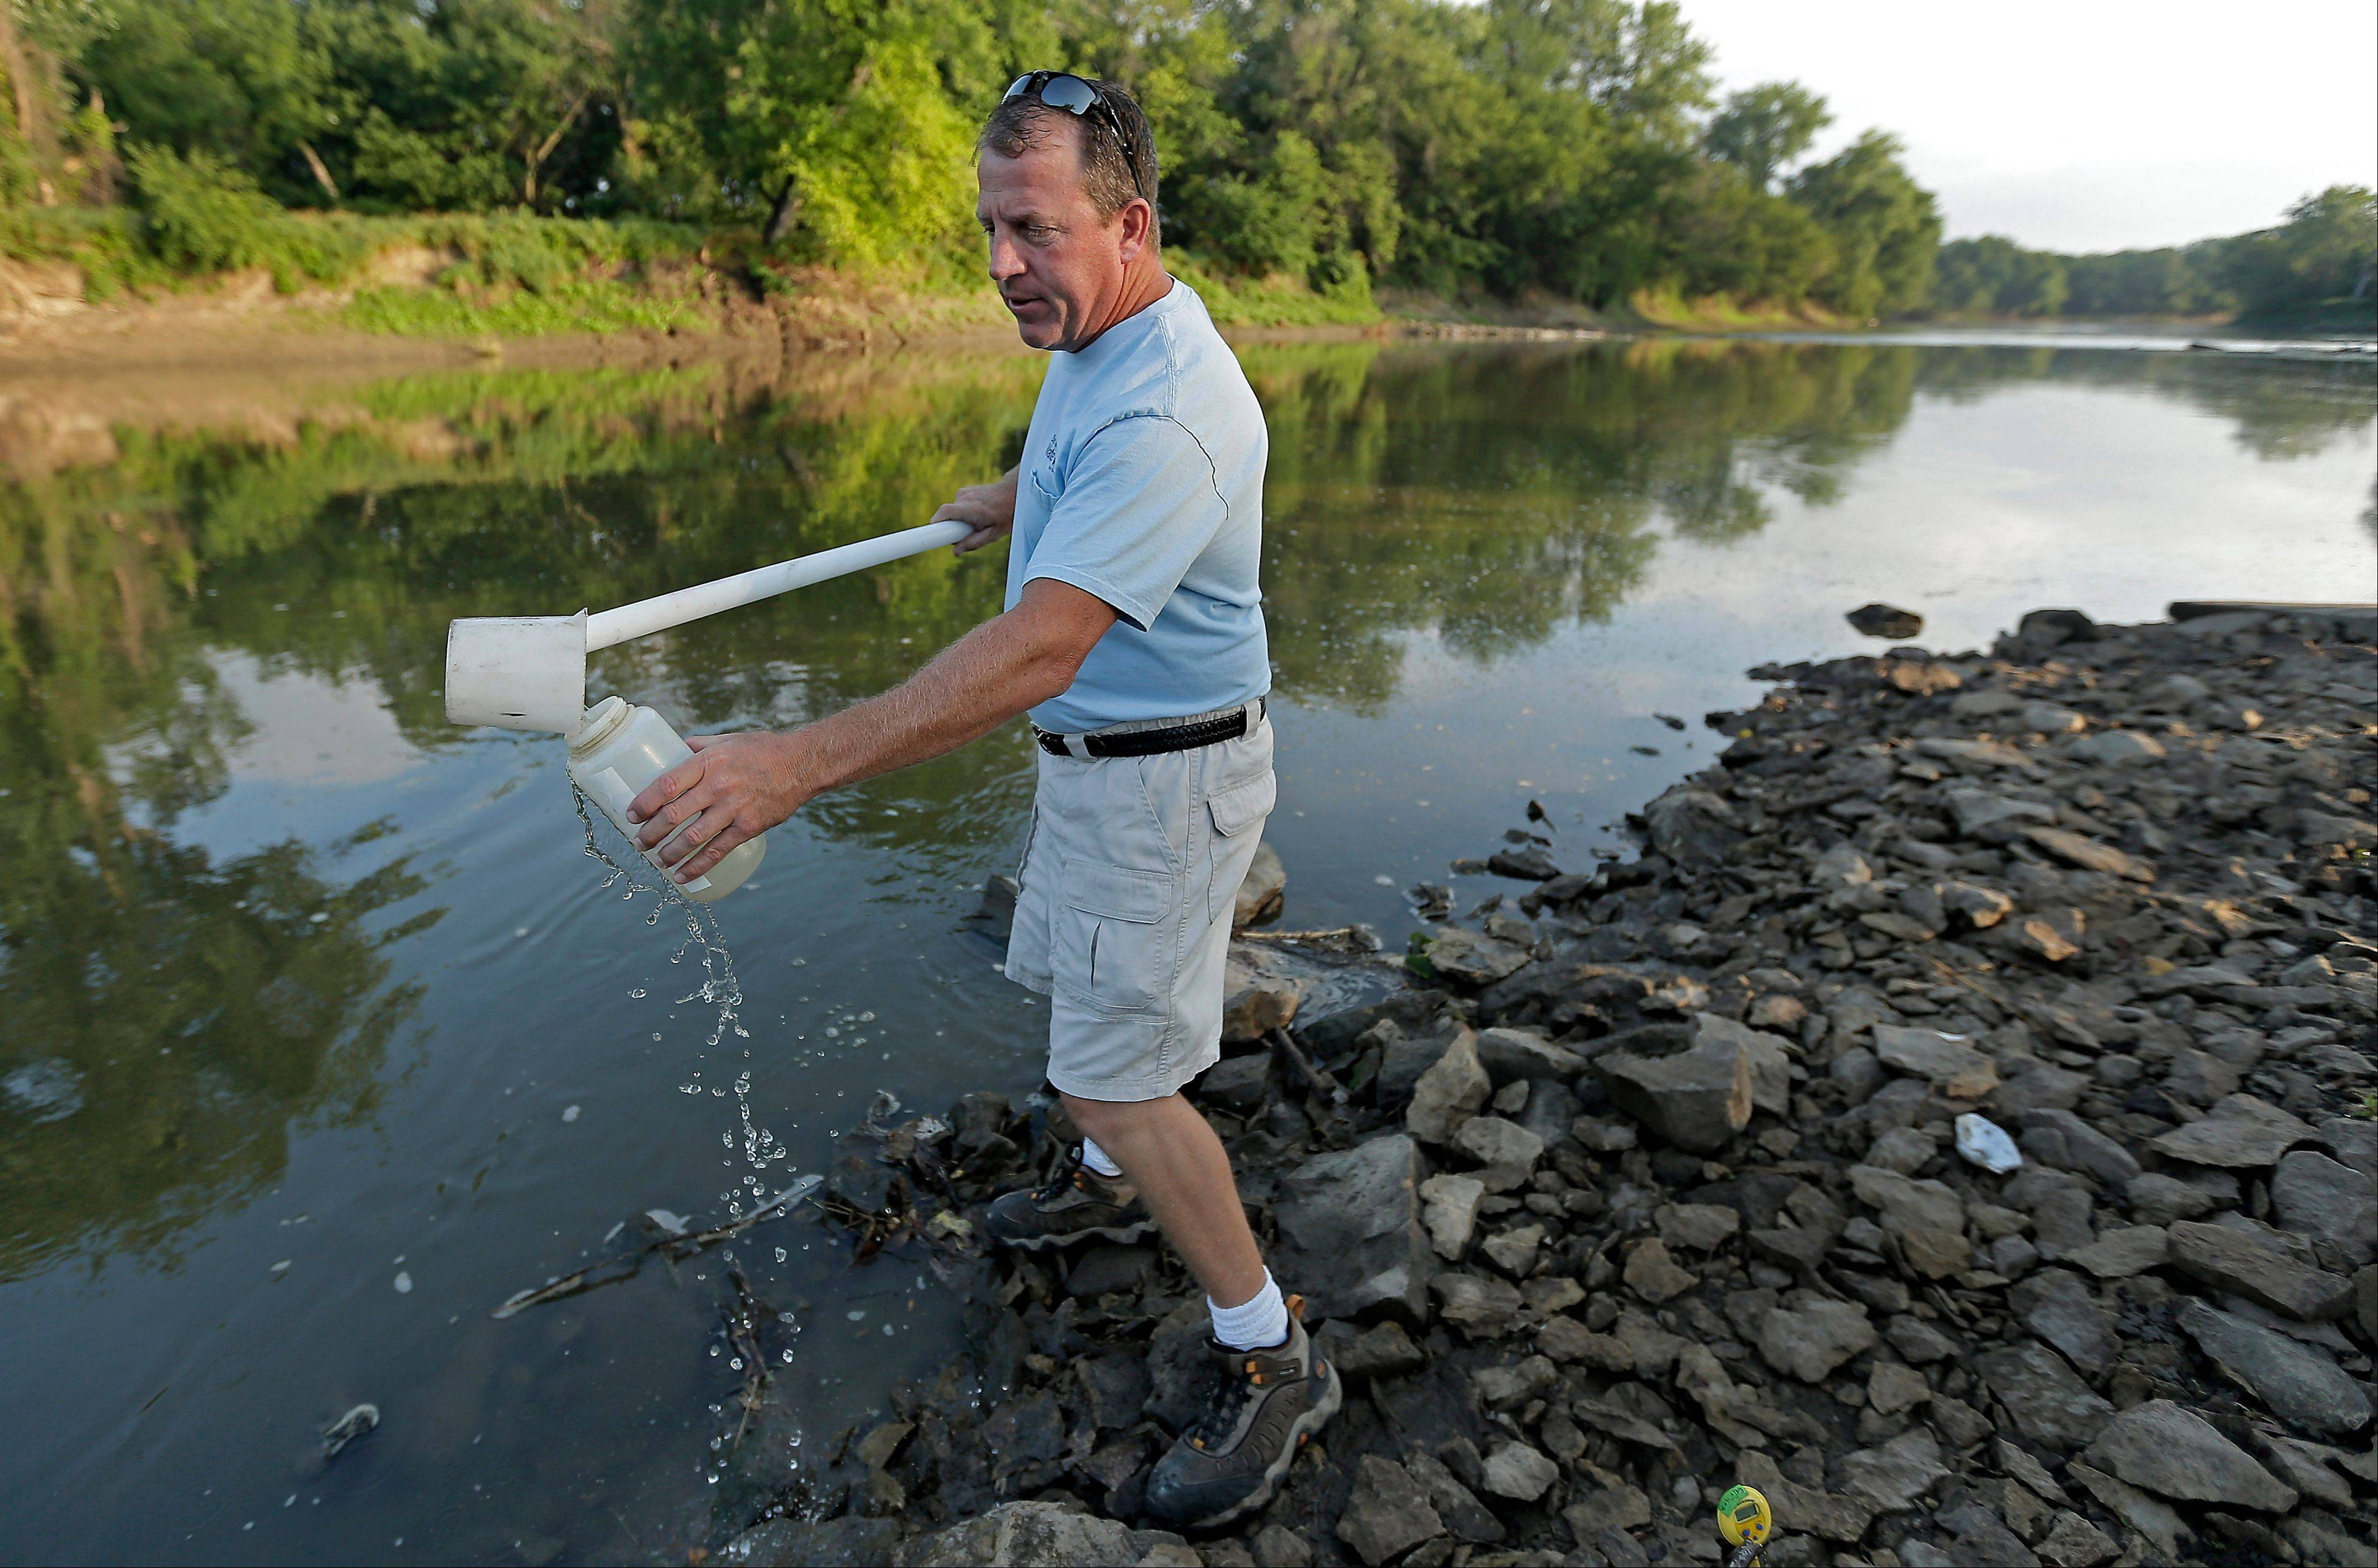 In this July 26, 2013, photo, Des Moines Water Works lab technician Bill Blubaugh takes a water sample from the Raccoon River in Des Moines. The water works has faced high nitrate levels for many years in the Des Moines and Raccoon Rivers, which supply drinking water to 500,000 people and the mandate to increase ethanol production, with millions of acres of new row crops being planted, is helping to increase nitrate pollution in municipal water supplies like Des Moines.